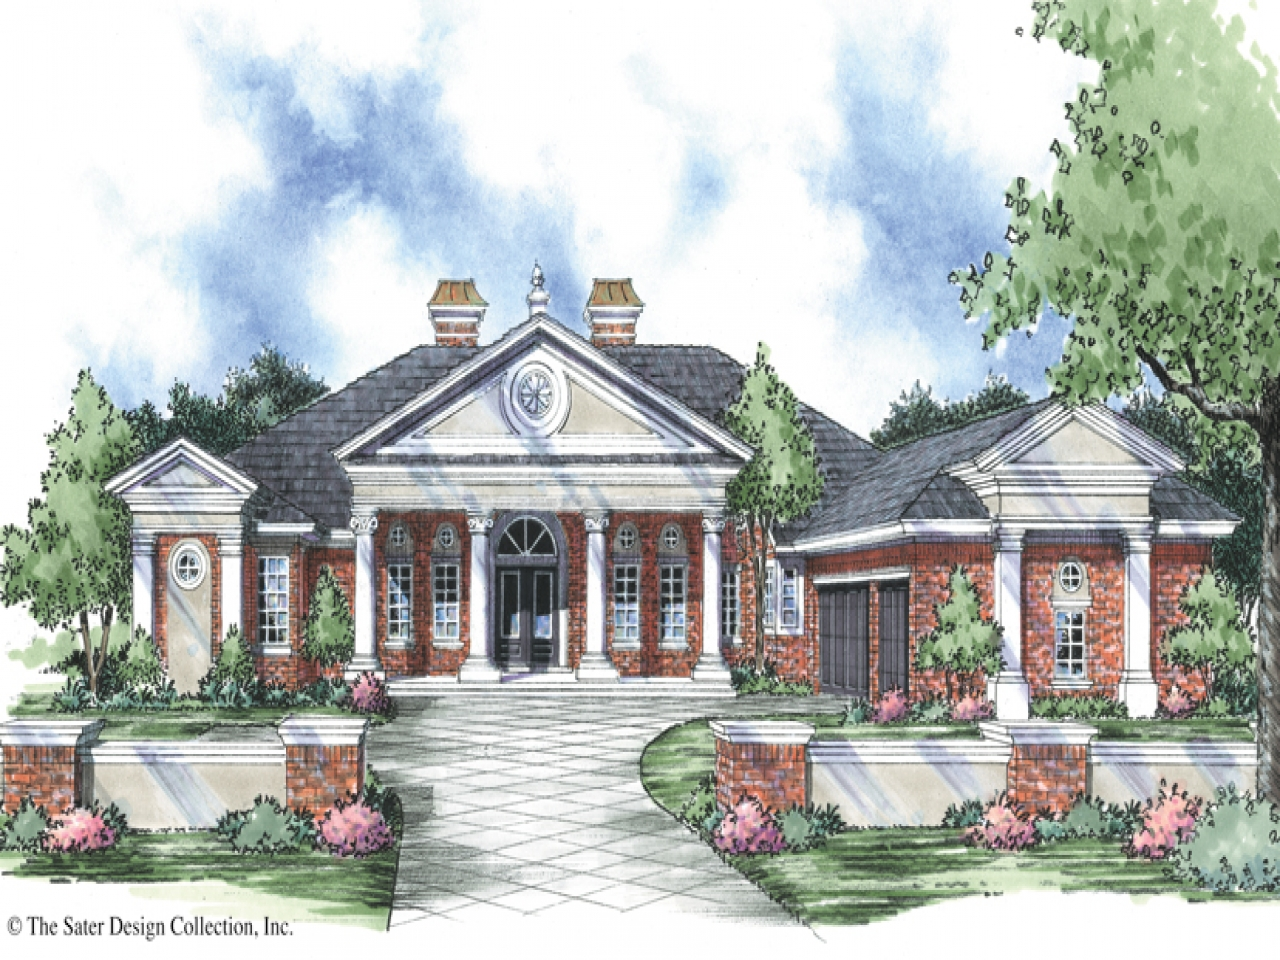 Southern Colonial House Plans on craftsman house plans, vintage house plans, southern colonial additions, country house plans, ranch house plans, farmhouse house plans, cape cod house plans, european house plans, victorian house plans, estate house plans, southern mansion plans, southern living house plans, large house plans, southern colonial design, tuscan house plans, southern small house plans, southern colonial wedding, mediterranean house plans, federal house plans, southern duplex house plans,